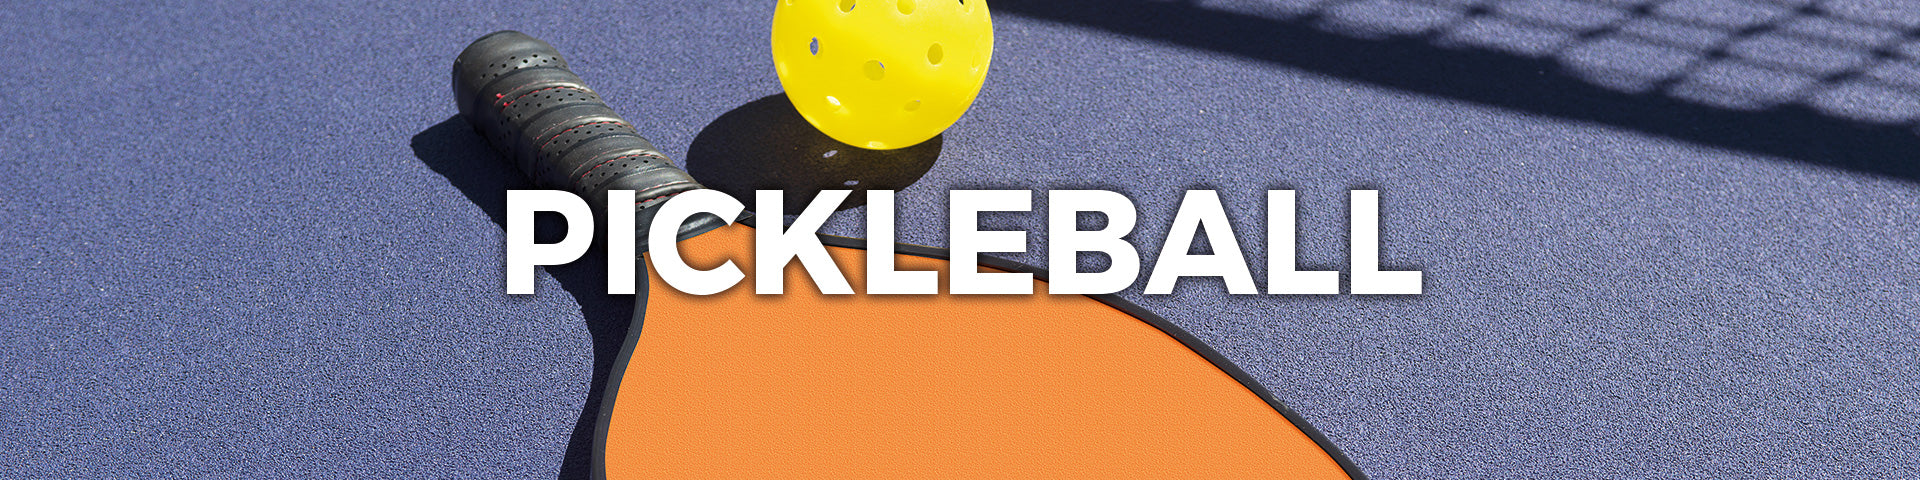 Pickleball Collectors